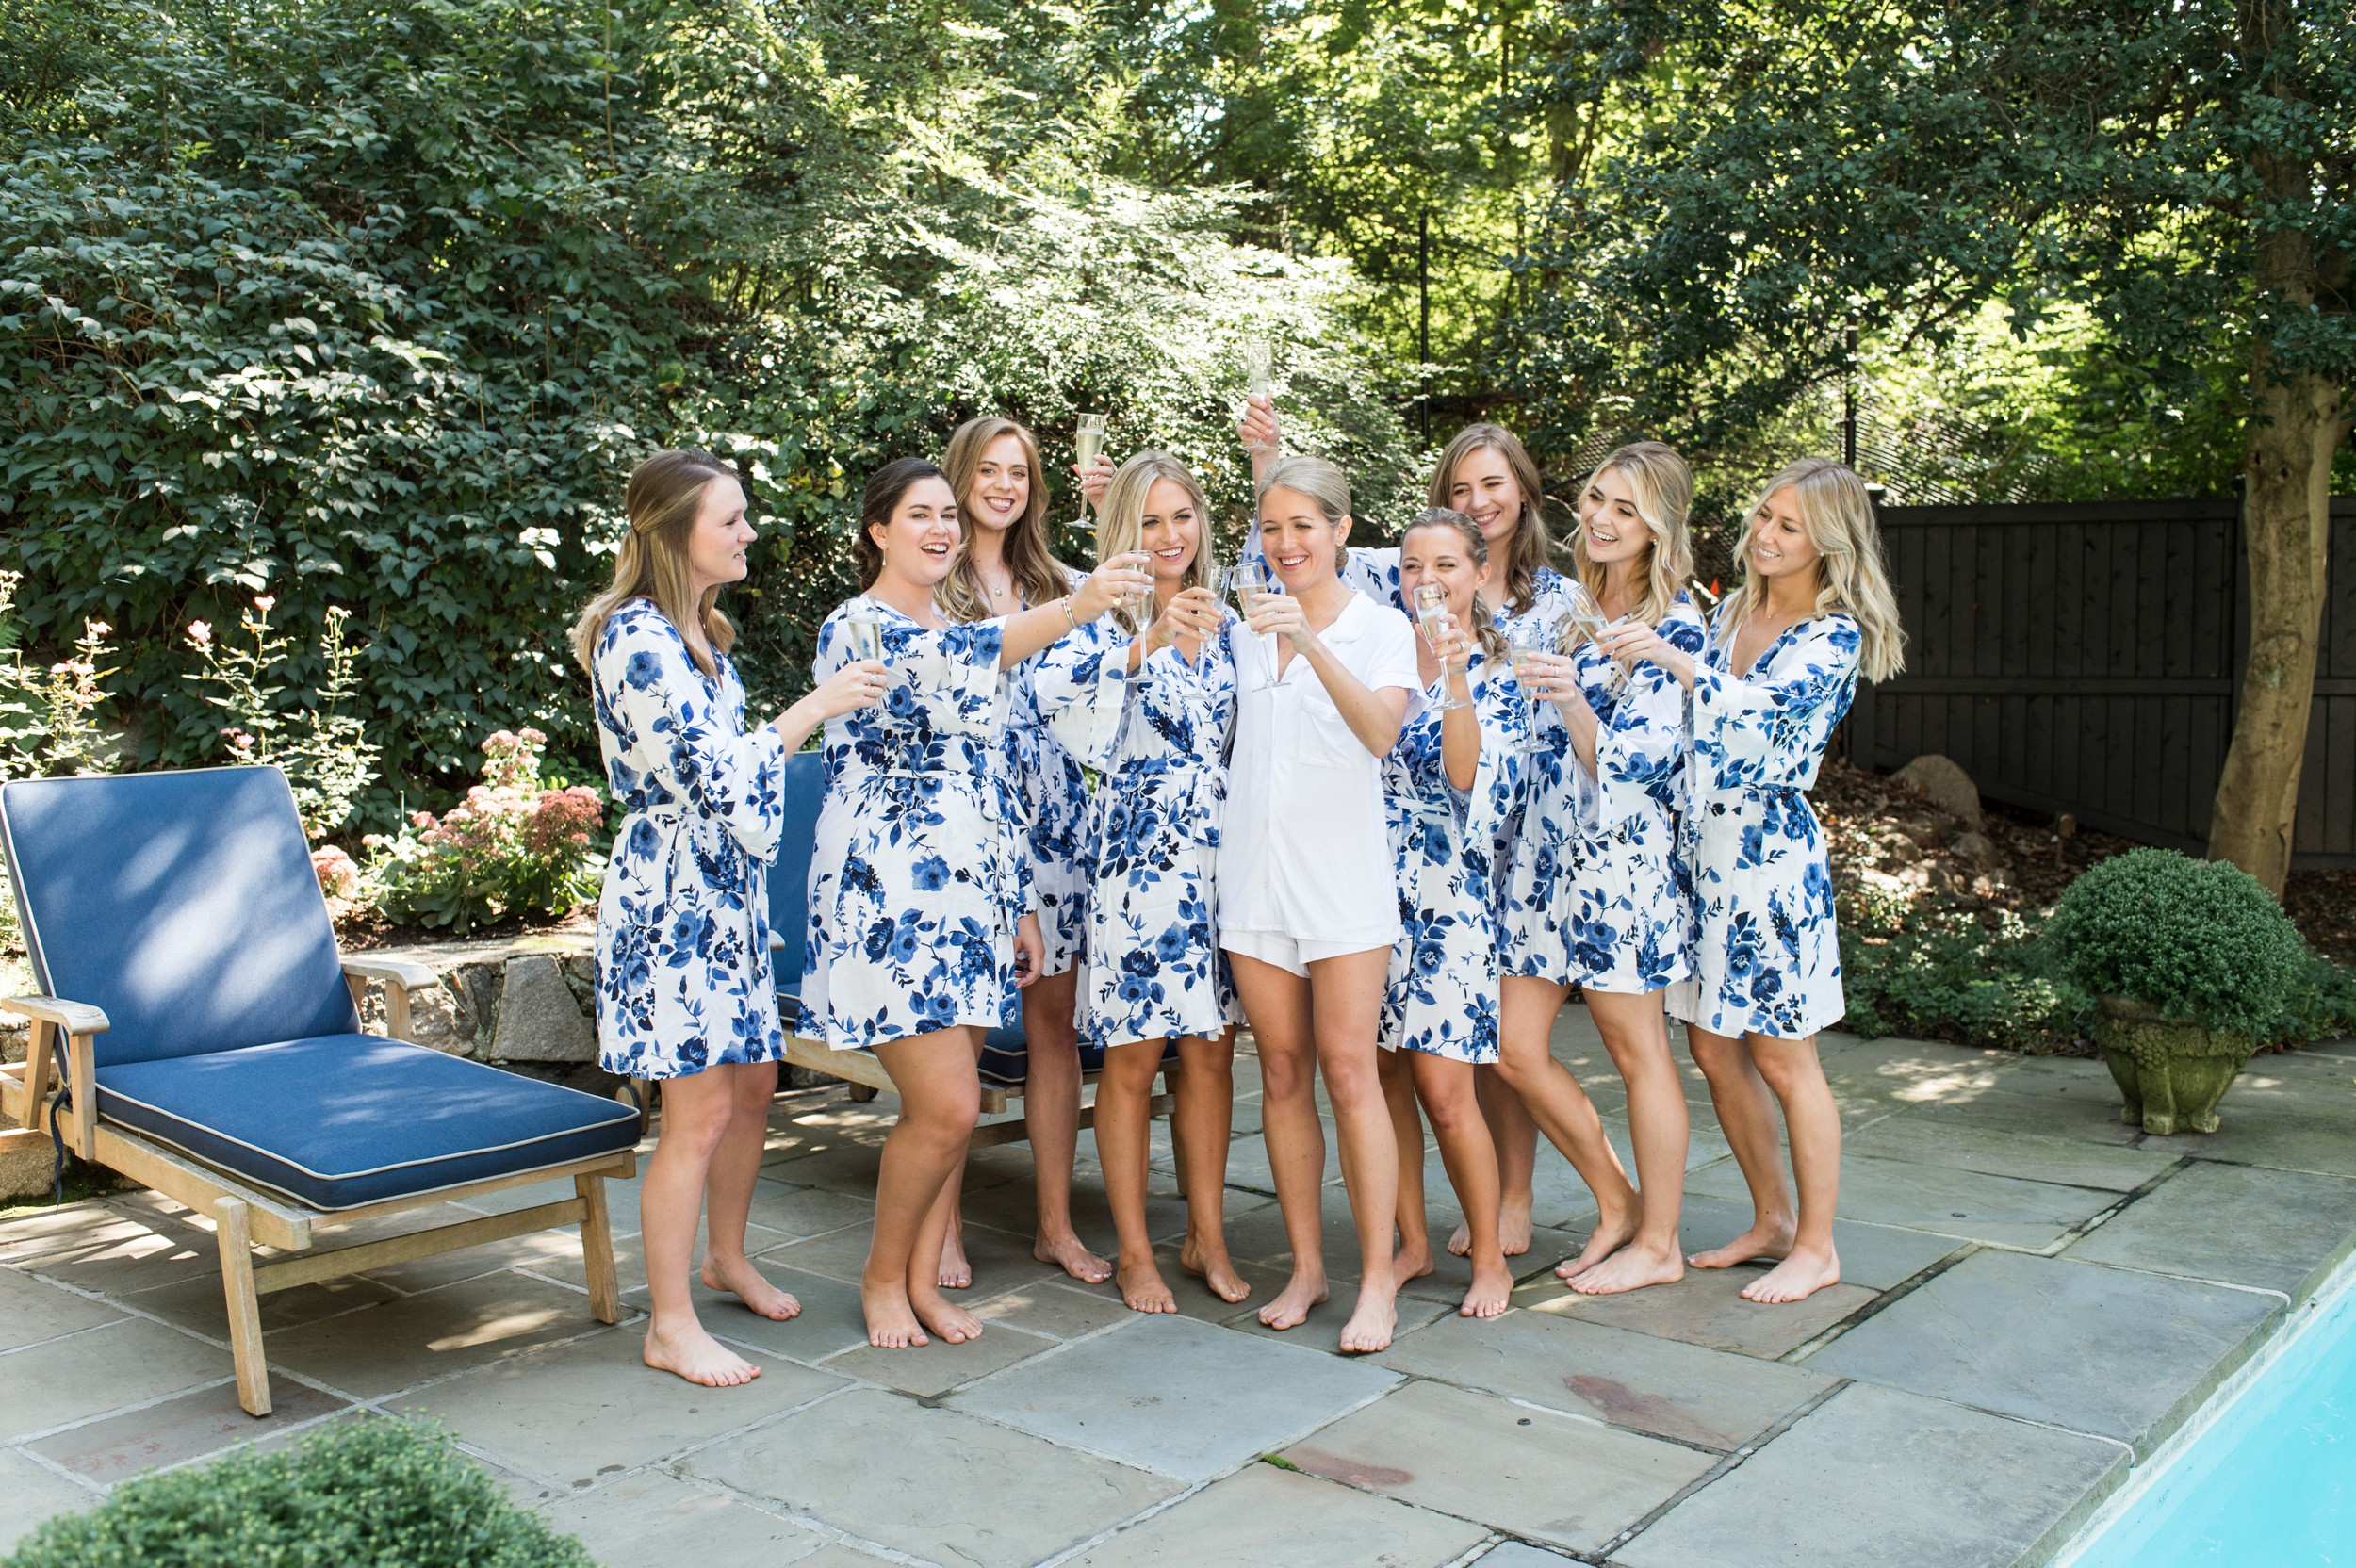 Wee Burn Beach Club Wedding Darien CT bridesmaids blue floral pajamas getting ready champagne toast